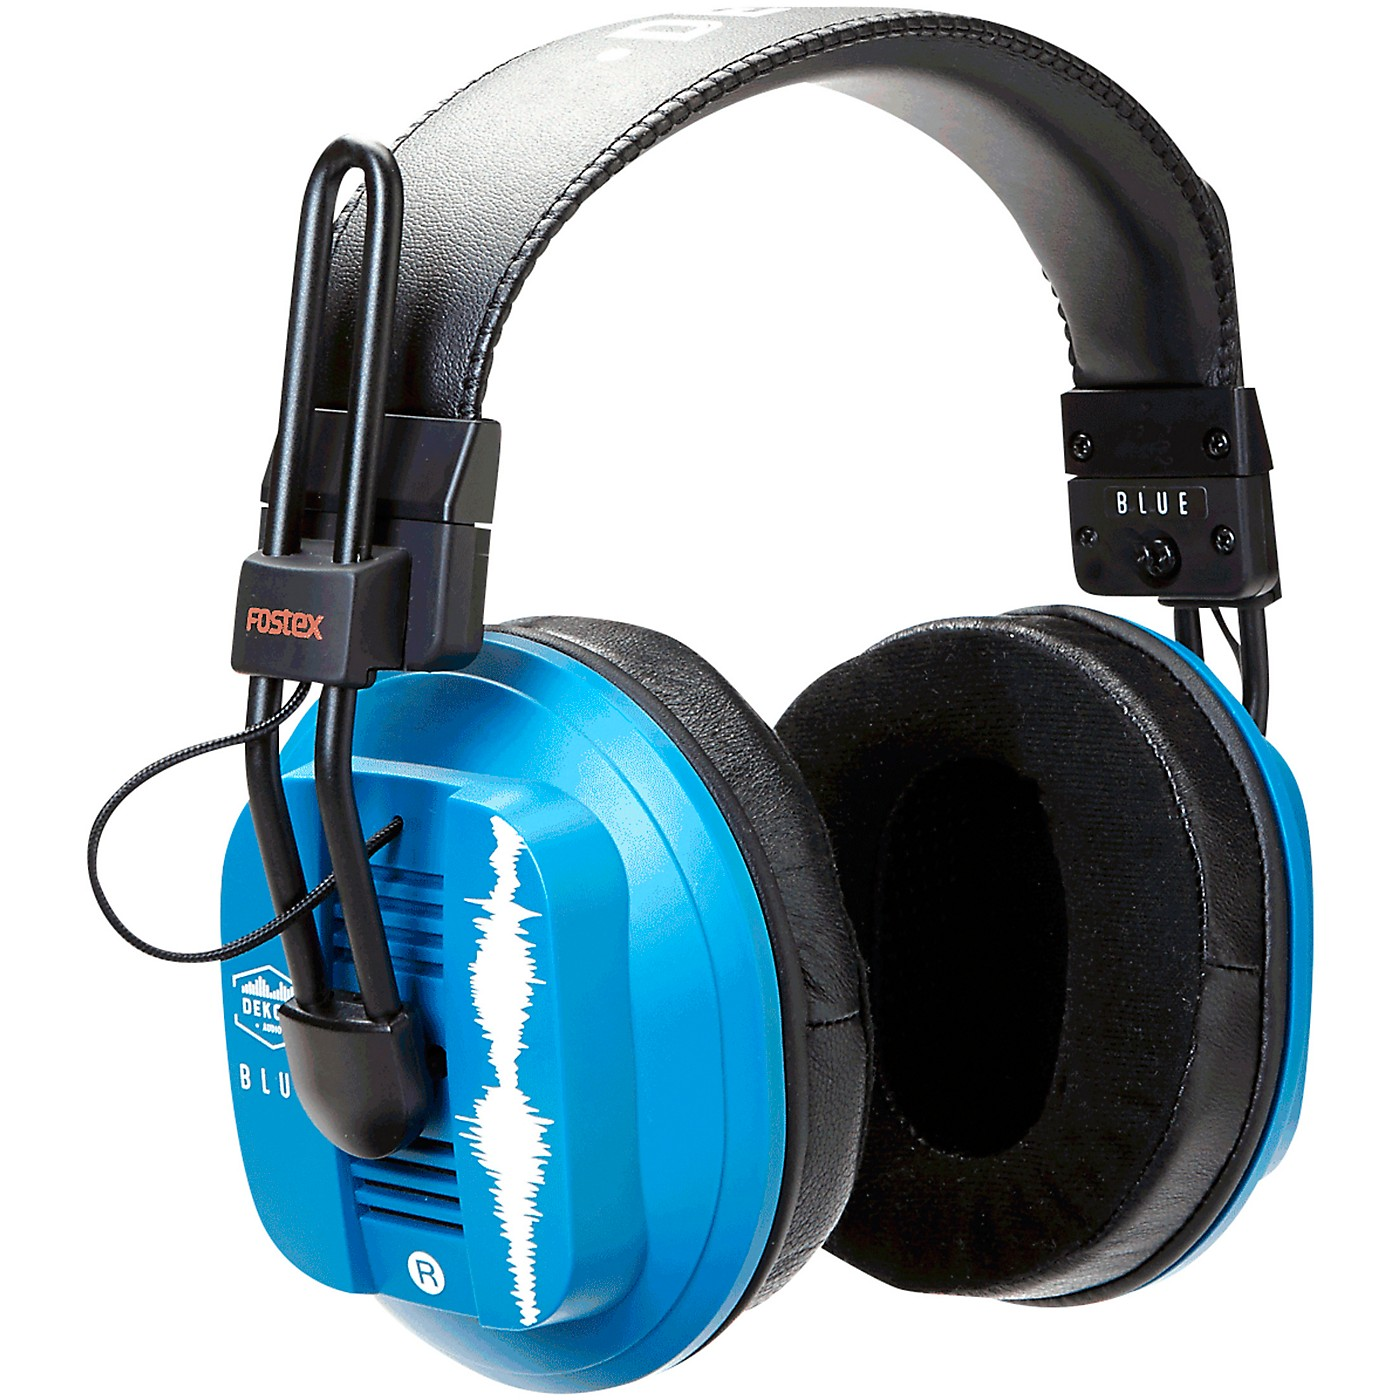 Dekoni Audio Blue - Fostex/Dekoni Audiophile HiFi Planar Magnetic Headphone thumbnail